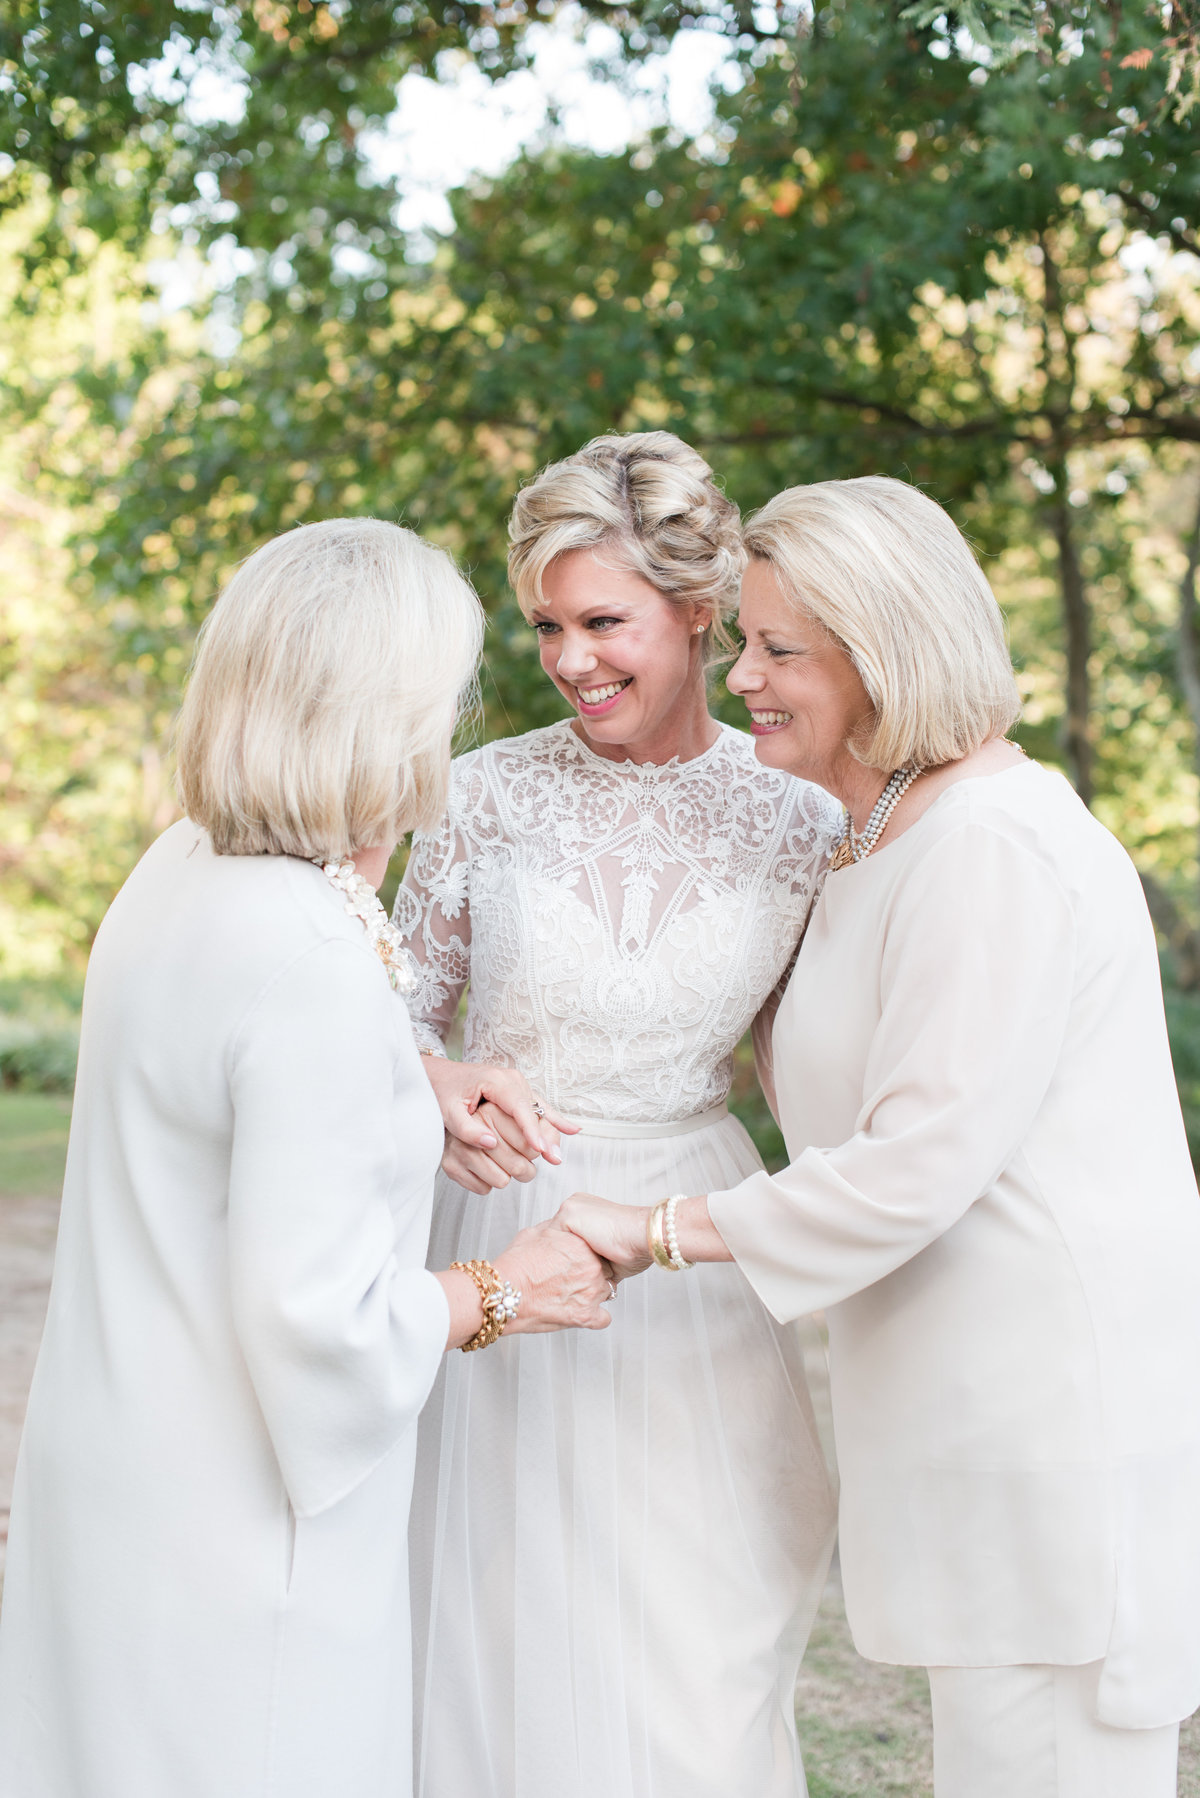 Fletcher_Park_Raleigh_NC_Wedding0072